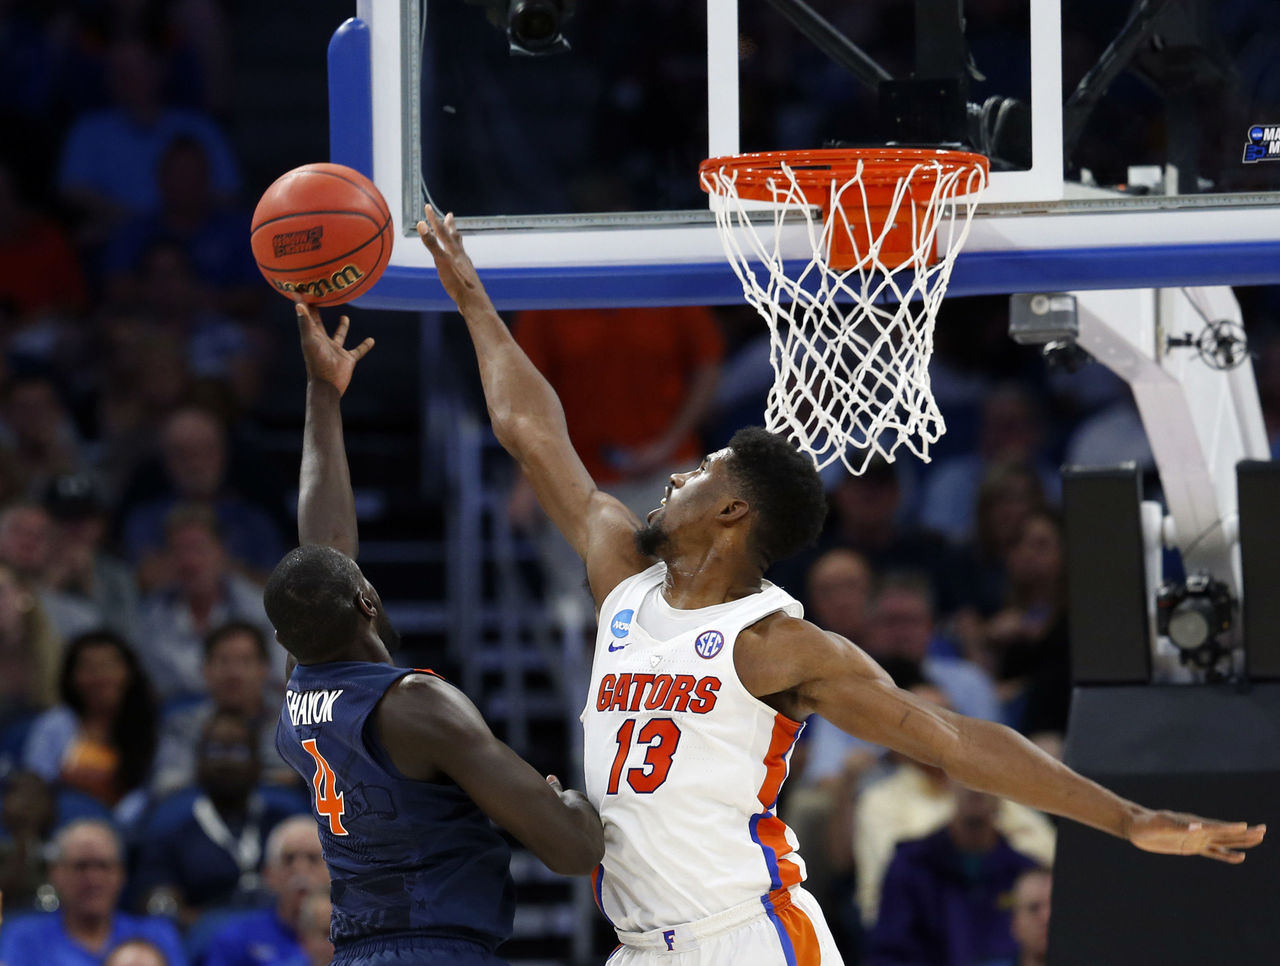 Cropped_2017-03-19t021118z_2008306978_nocid_rtrmadp_3_ncaa-basketball-ncaa-tournament-second-round-florida-vs-virginia